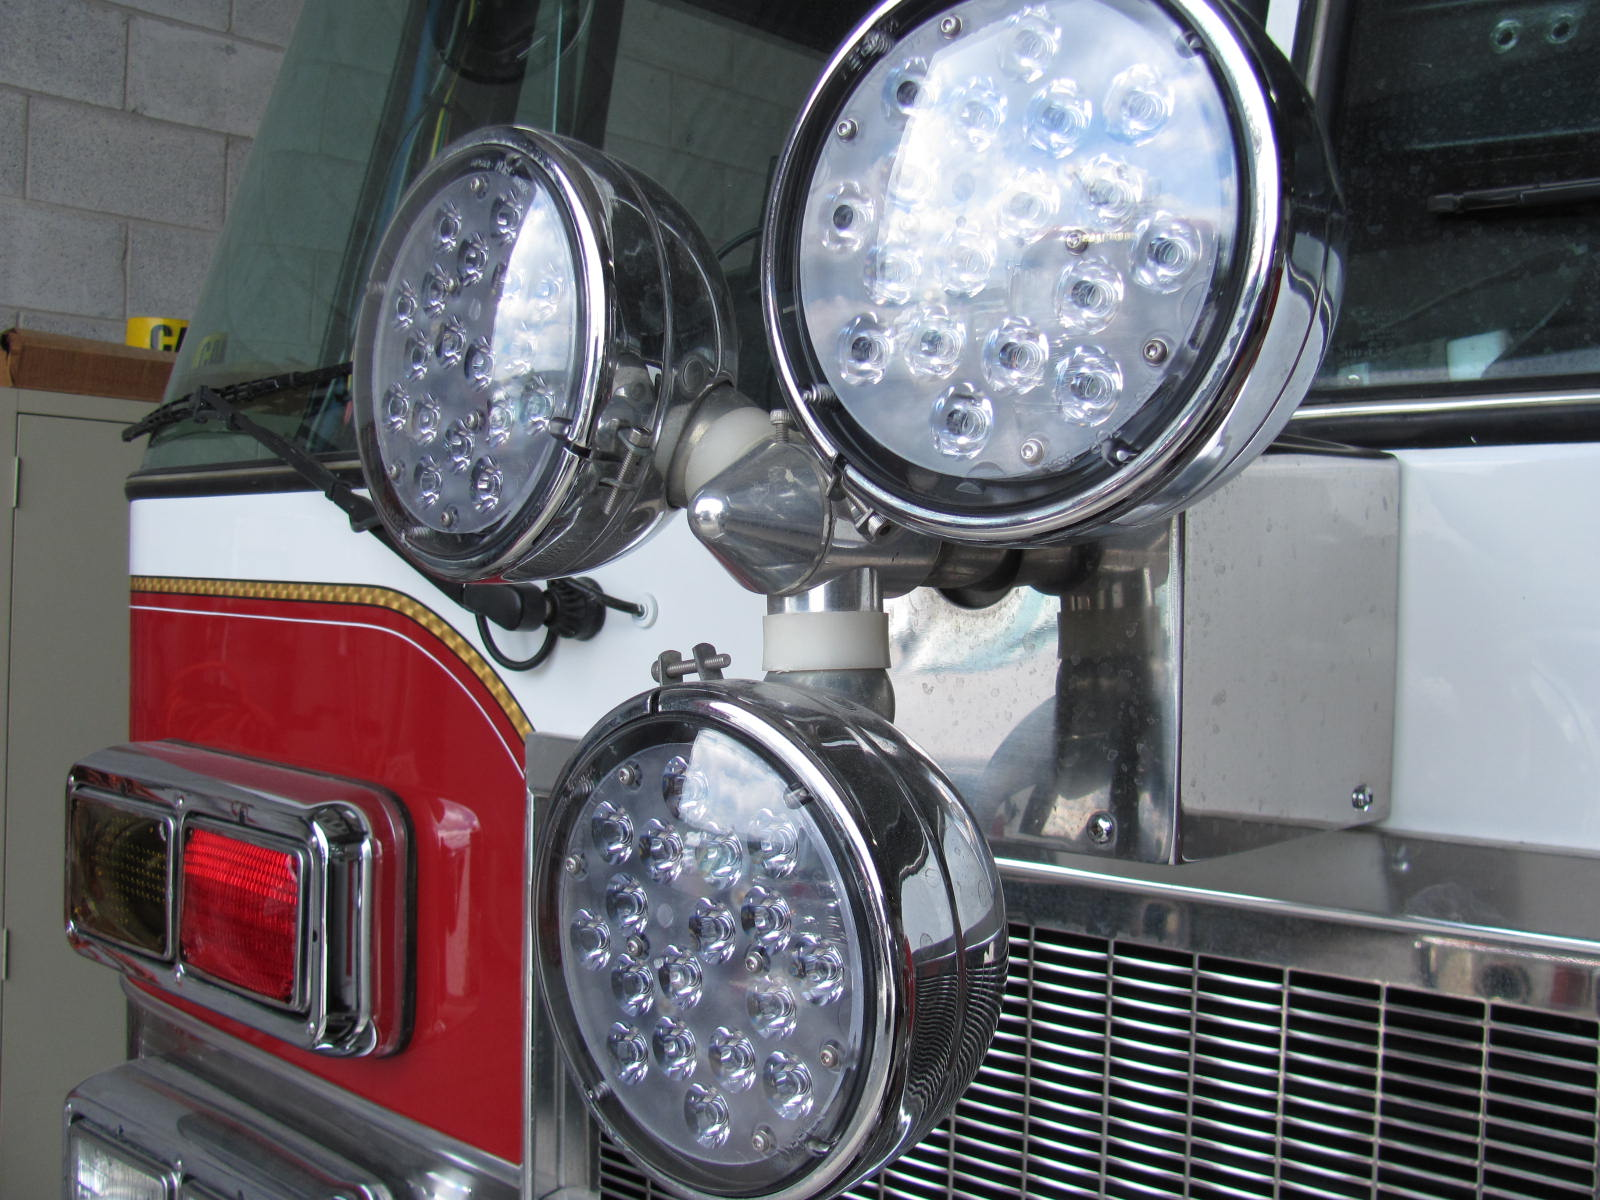 Fire Line Equipment Led Warning Light Upgrades